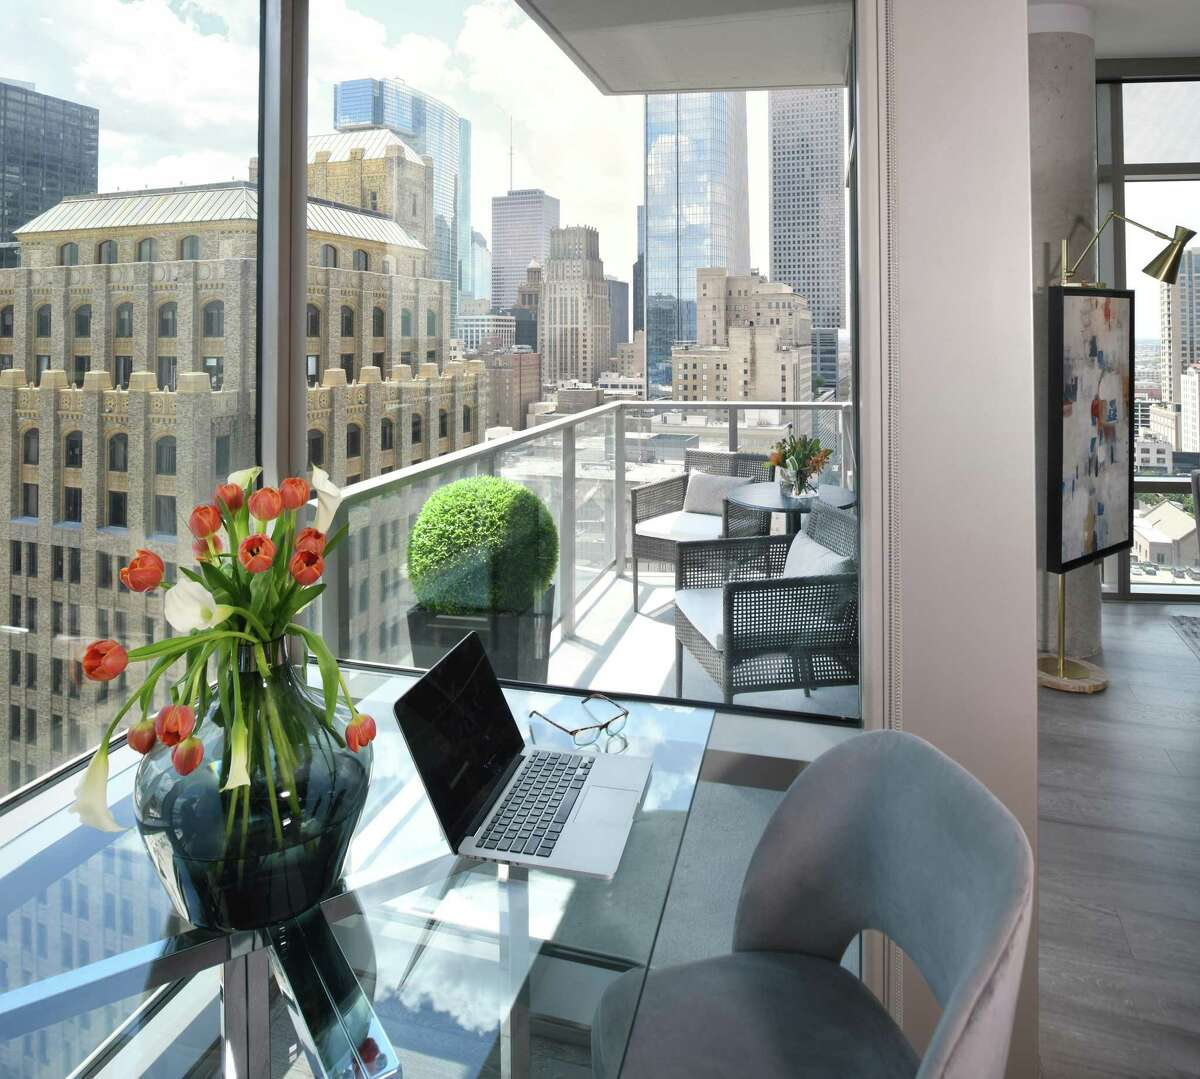 The apartment offers great view of downtown Houston and provides easy access to all the restaurants and attractions.